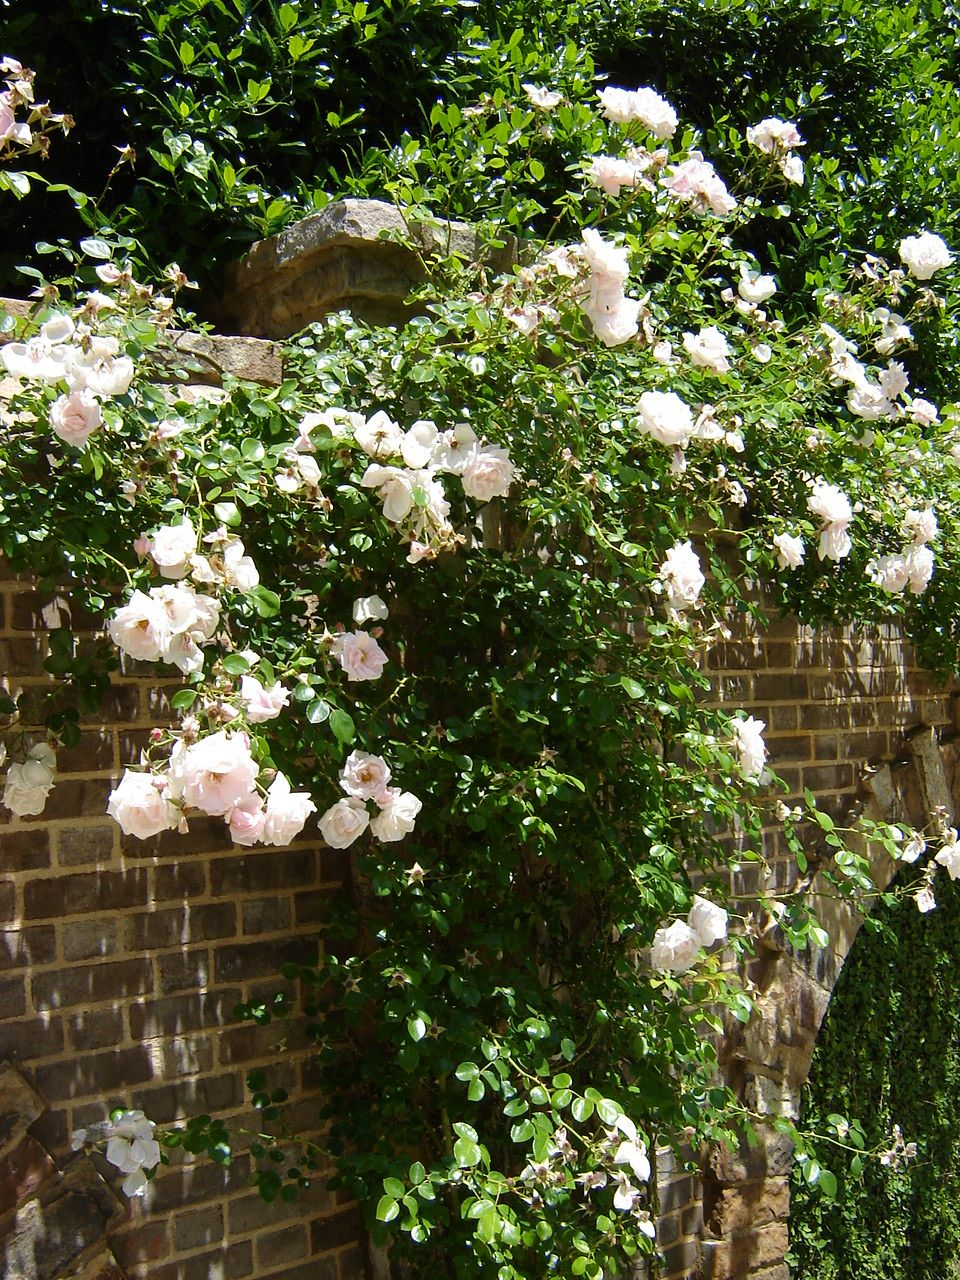 New Dawn Climbing Rose New dawn climbing rose, Climbing